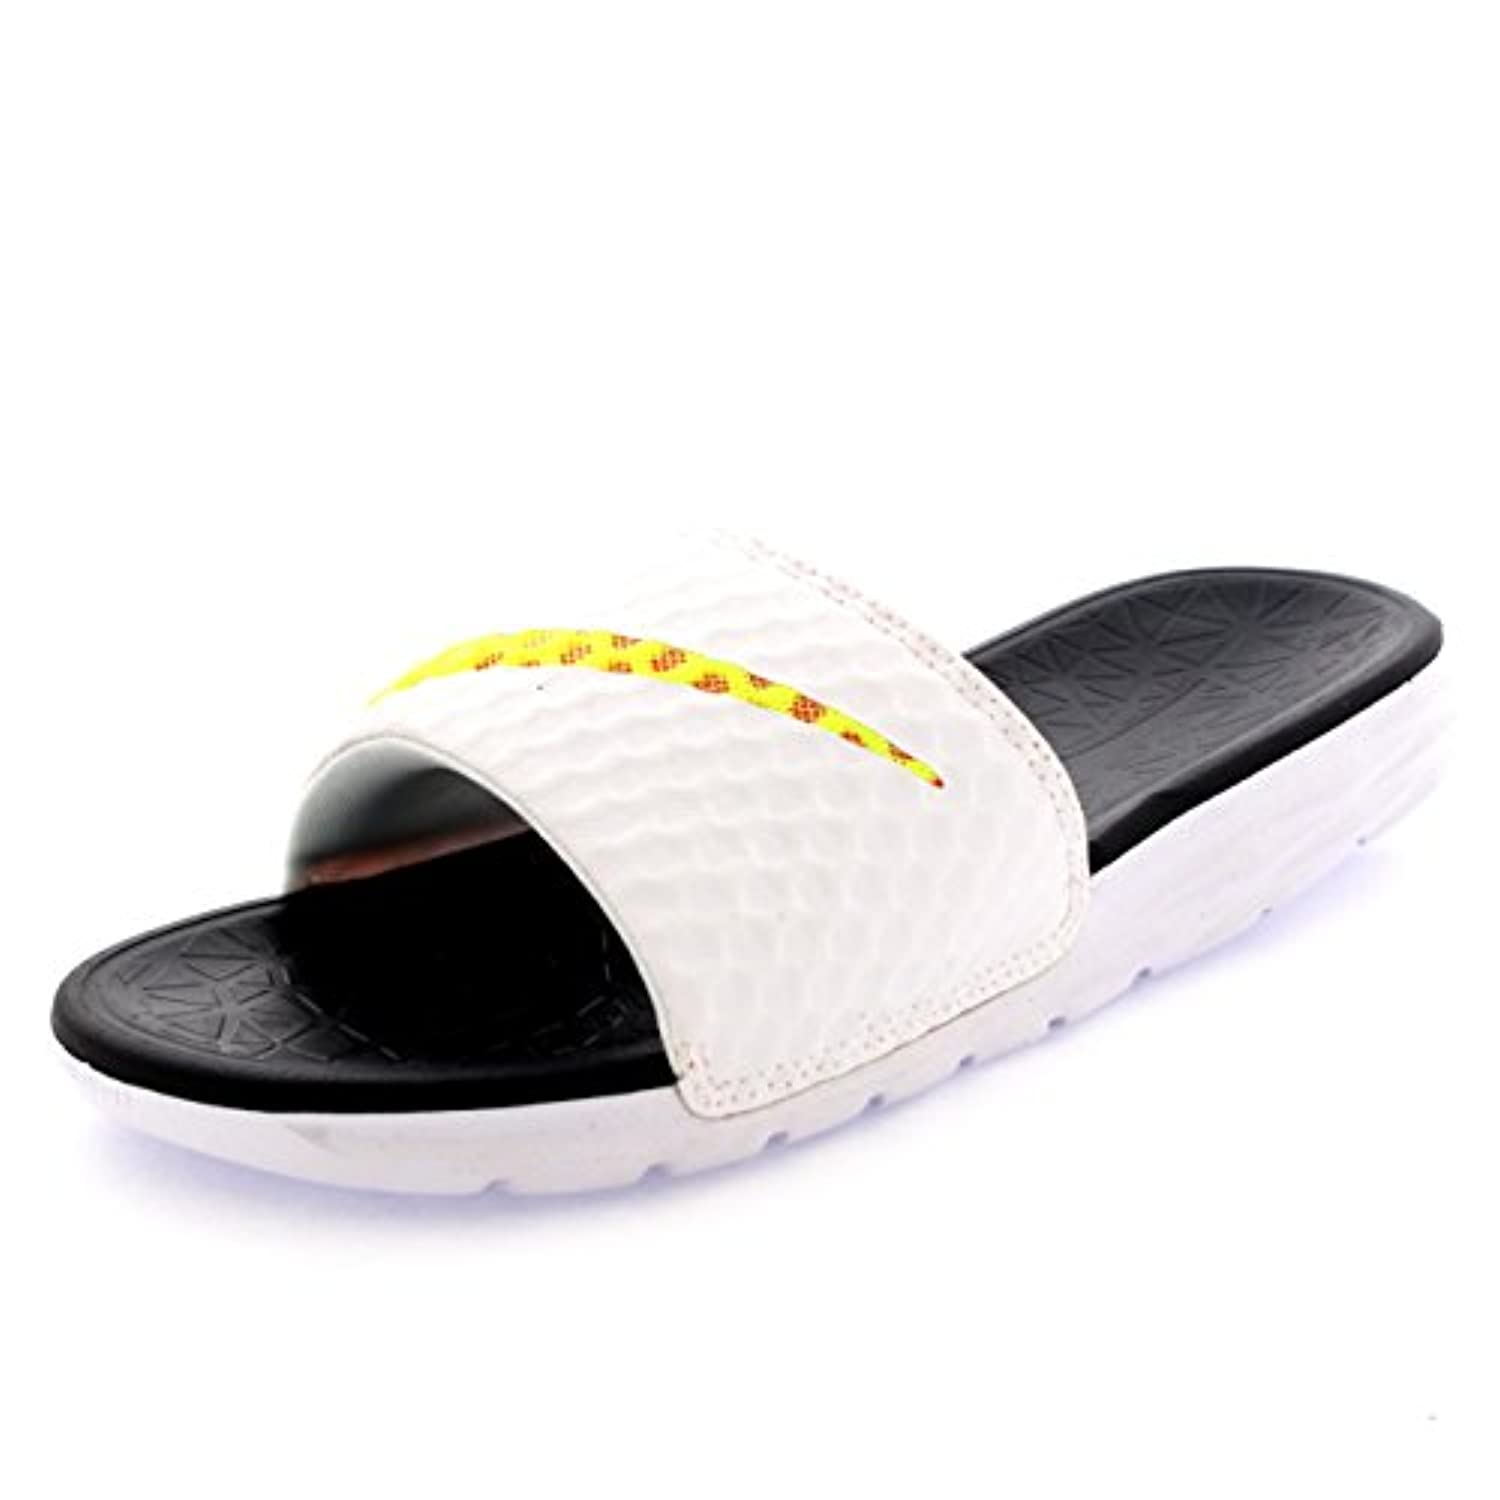 separation shoes 7dc05 9810e ... shopping unisex adults nike benassi solarsoft slide 2 pool slippers beach  sandals white black 1b044 0d47a